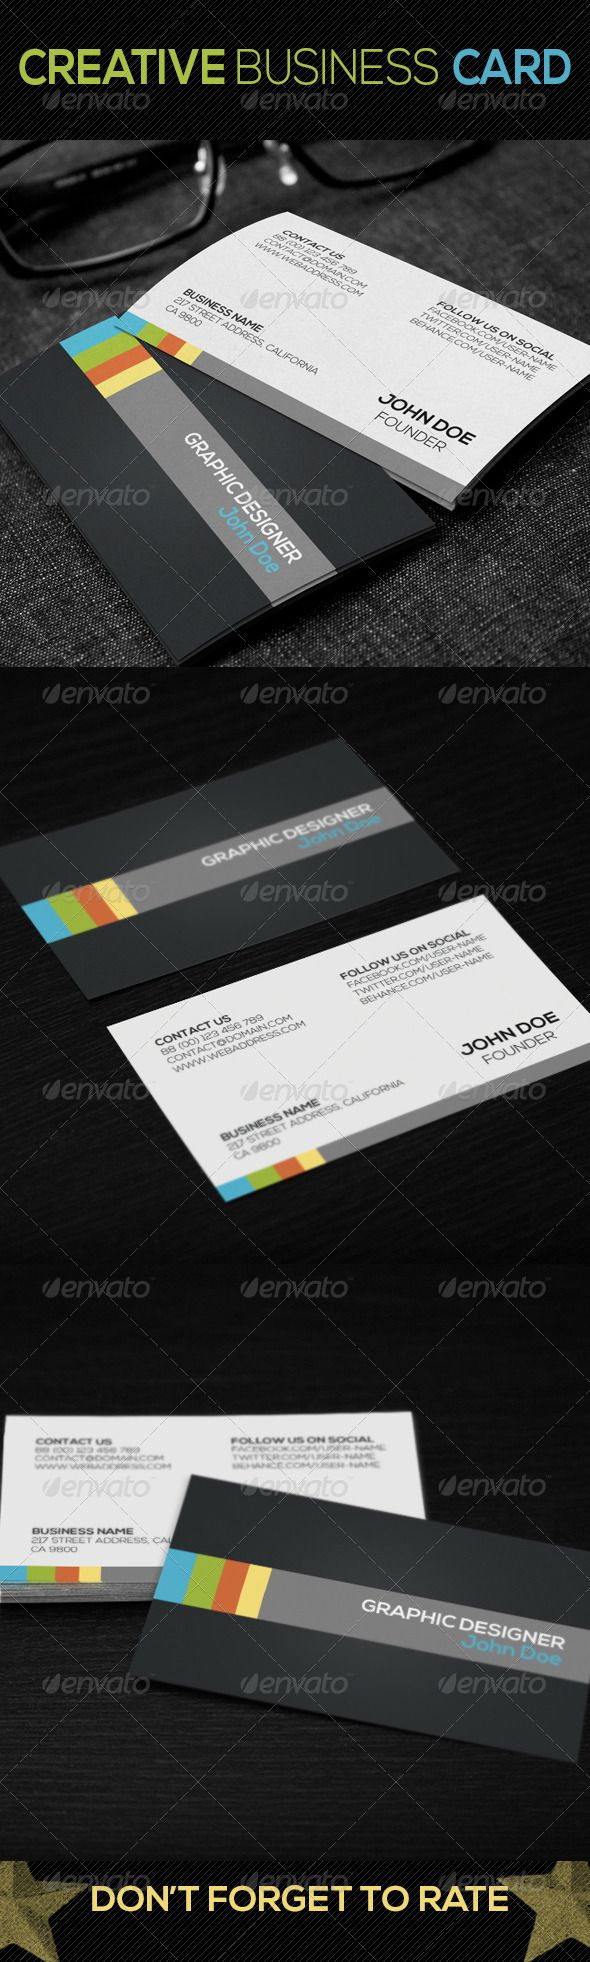 80 best images about Found Inspiration Business Cards on – Professional Business Profile